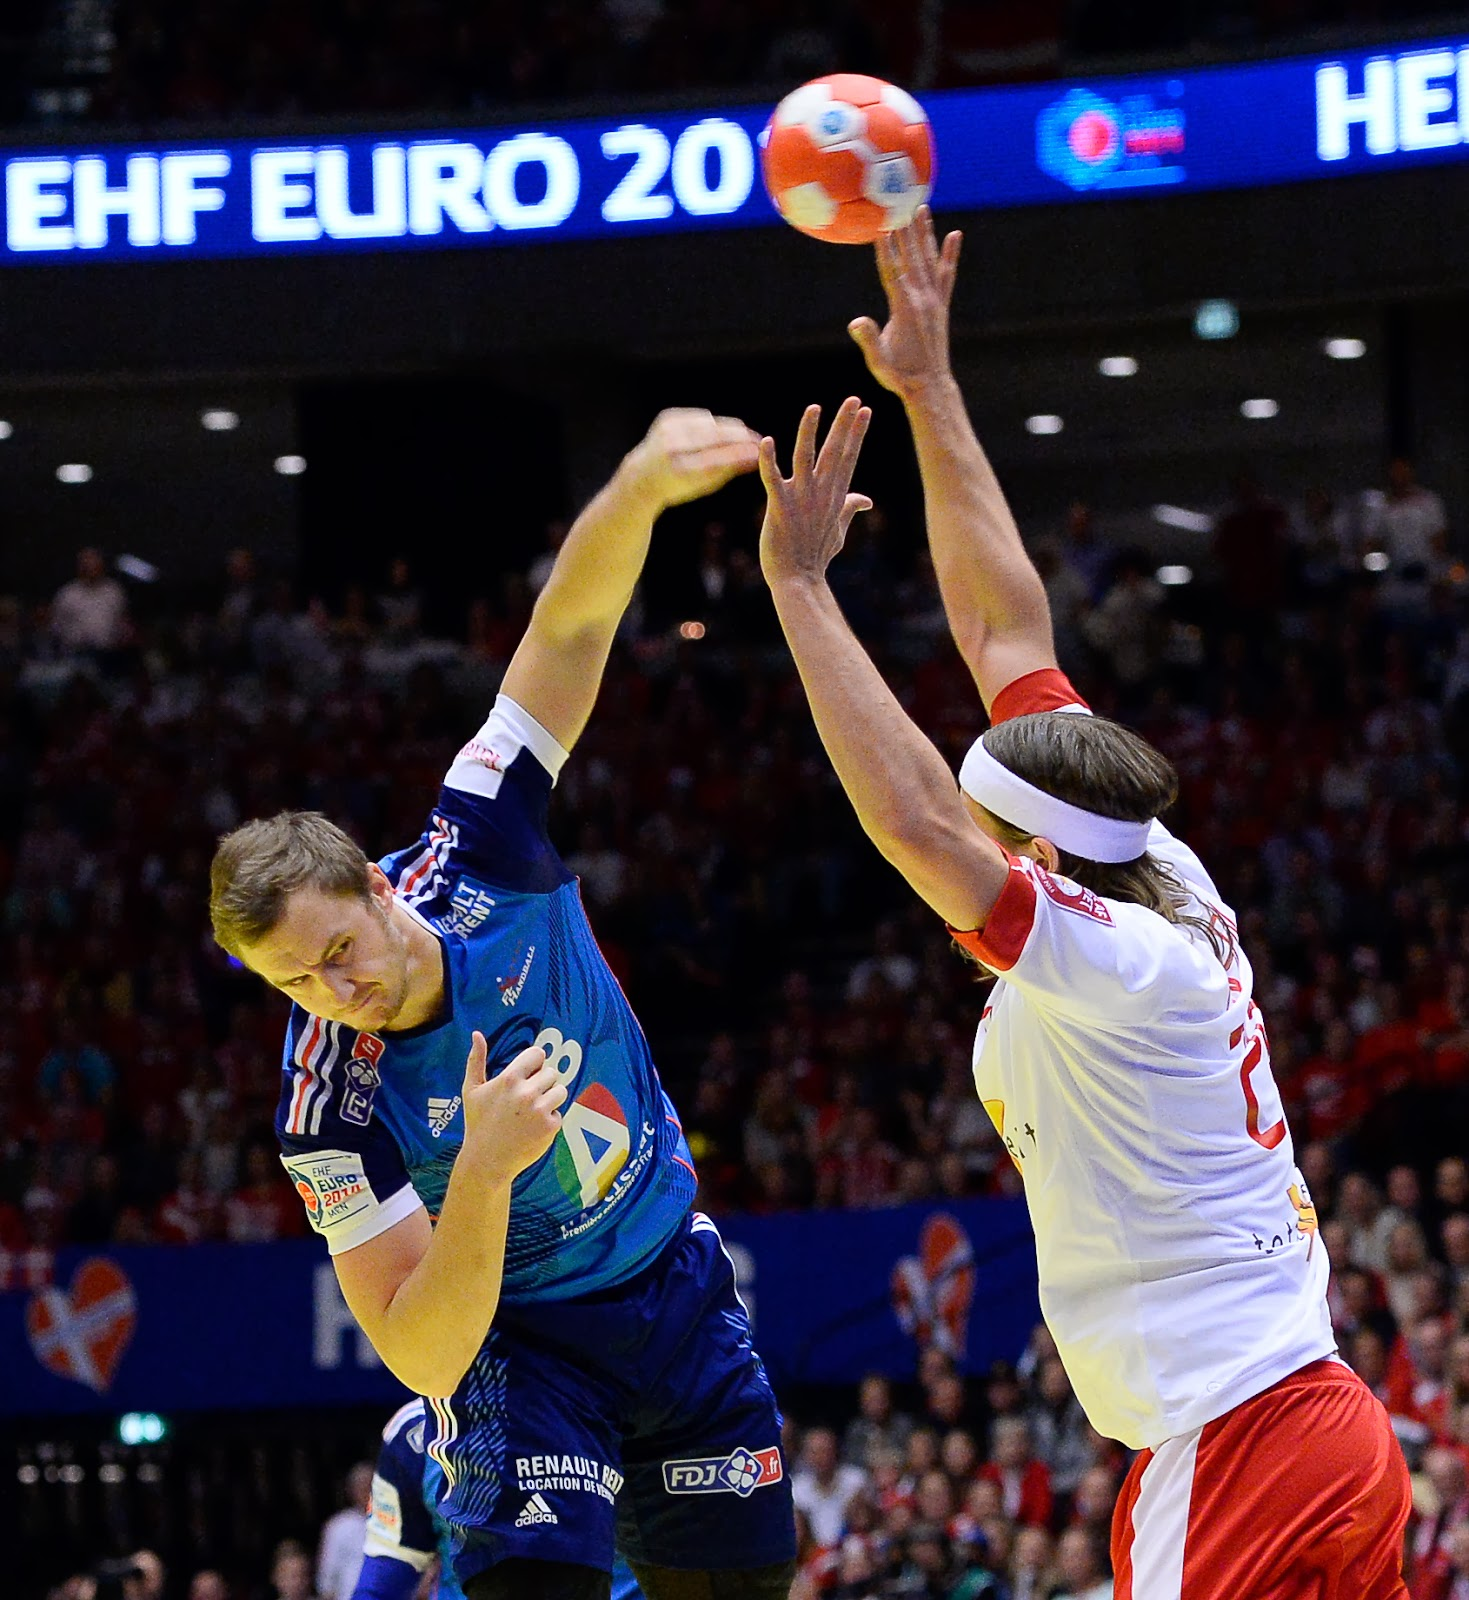 France, Denmark, EHF, Men, Euro 2014, Handball, Championship, Sports, Boxen Arena, Herning, Tournament, Spain, Nikola Karabatic, Player, Rene Toft Hansen, Denmark vs France, Final, Match,